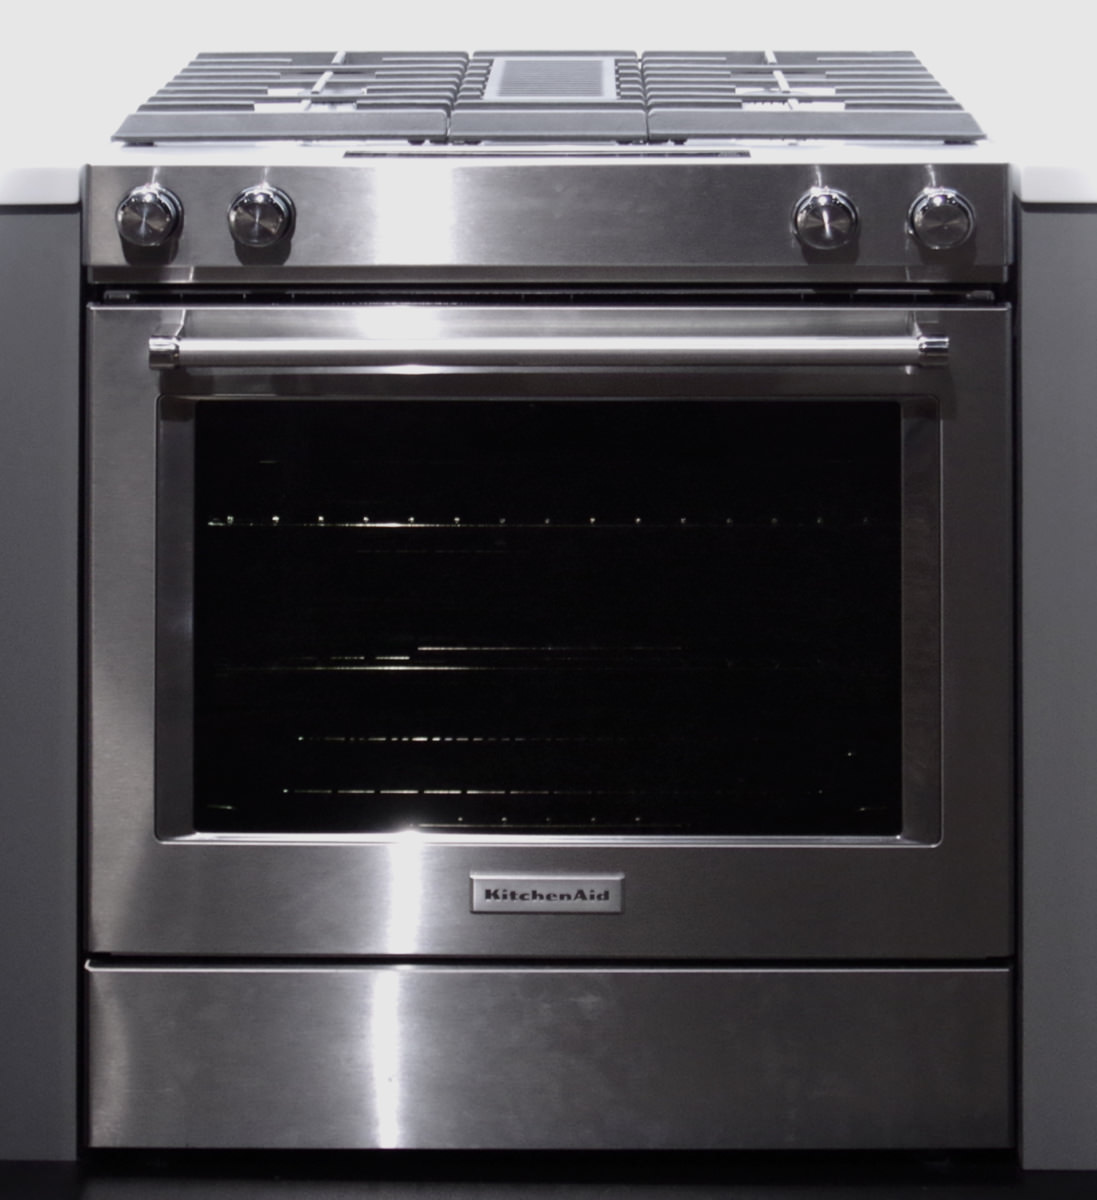 The Kitchenaid Ksdg950ess Downdraft Range Features Builtin Ventilation  Between The Two Rows Of Burners